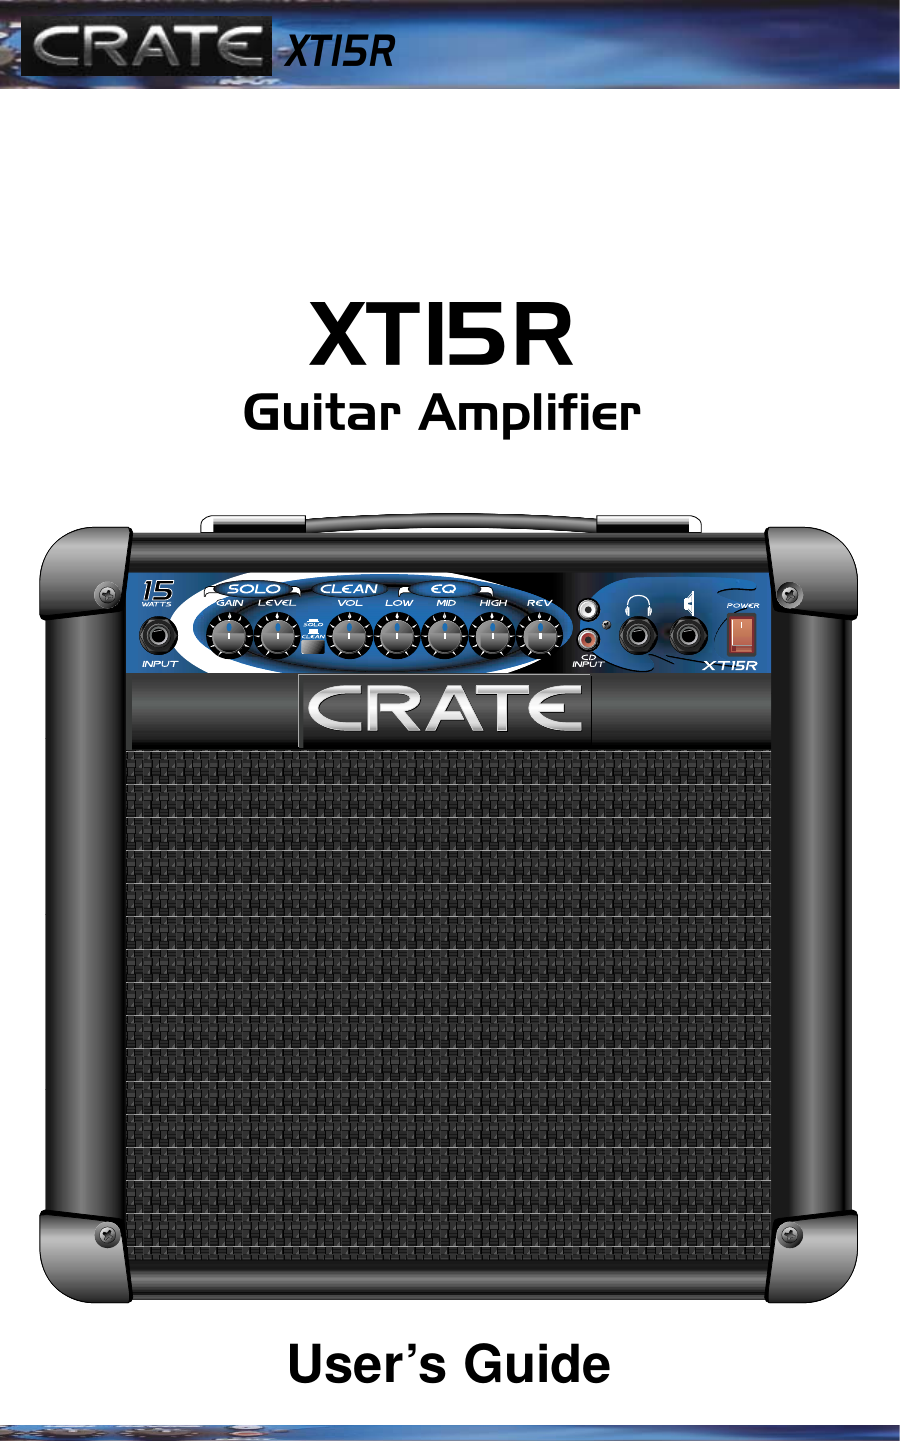 crate amplifiers xt15r users manual rh usermanual wiki Tour Guide Audio Systems Audio Tour Guide